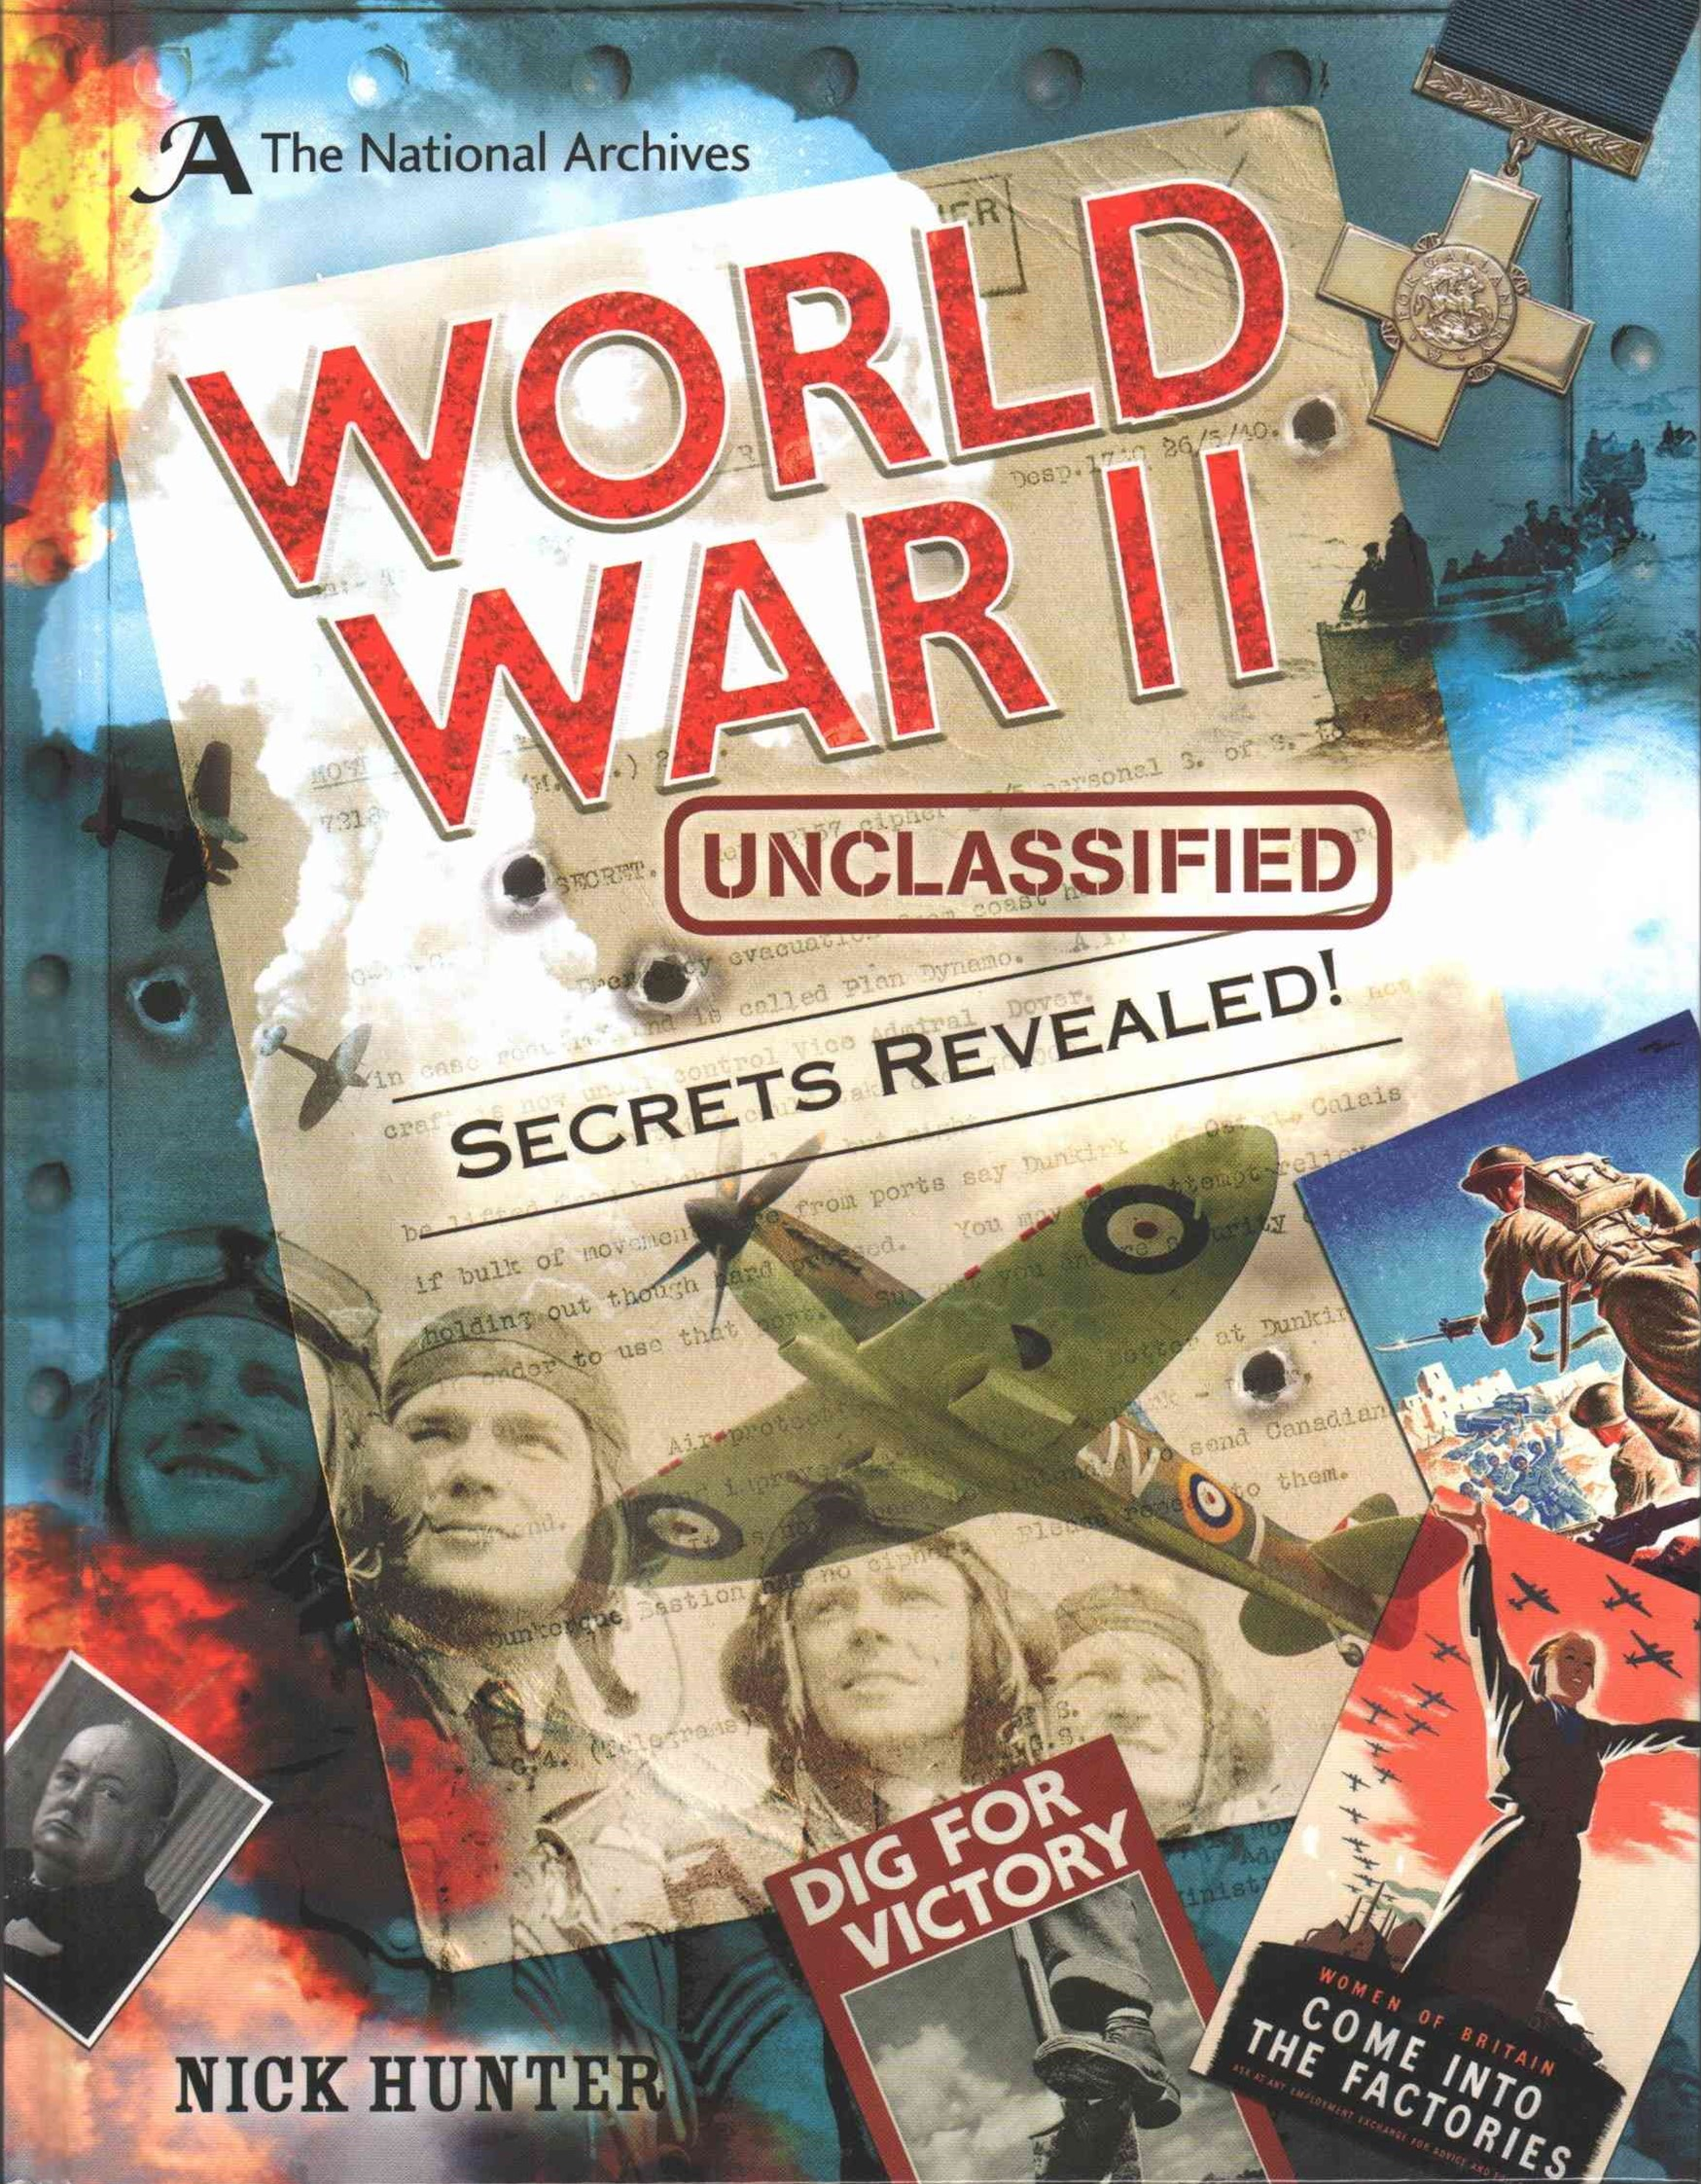 National Archives: World War II Unclassified